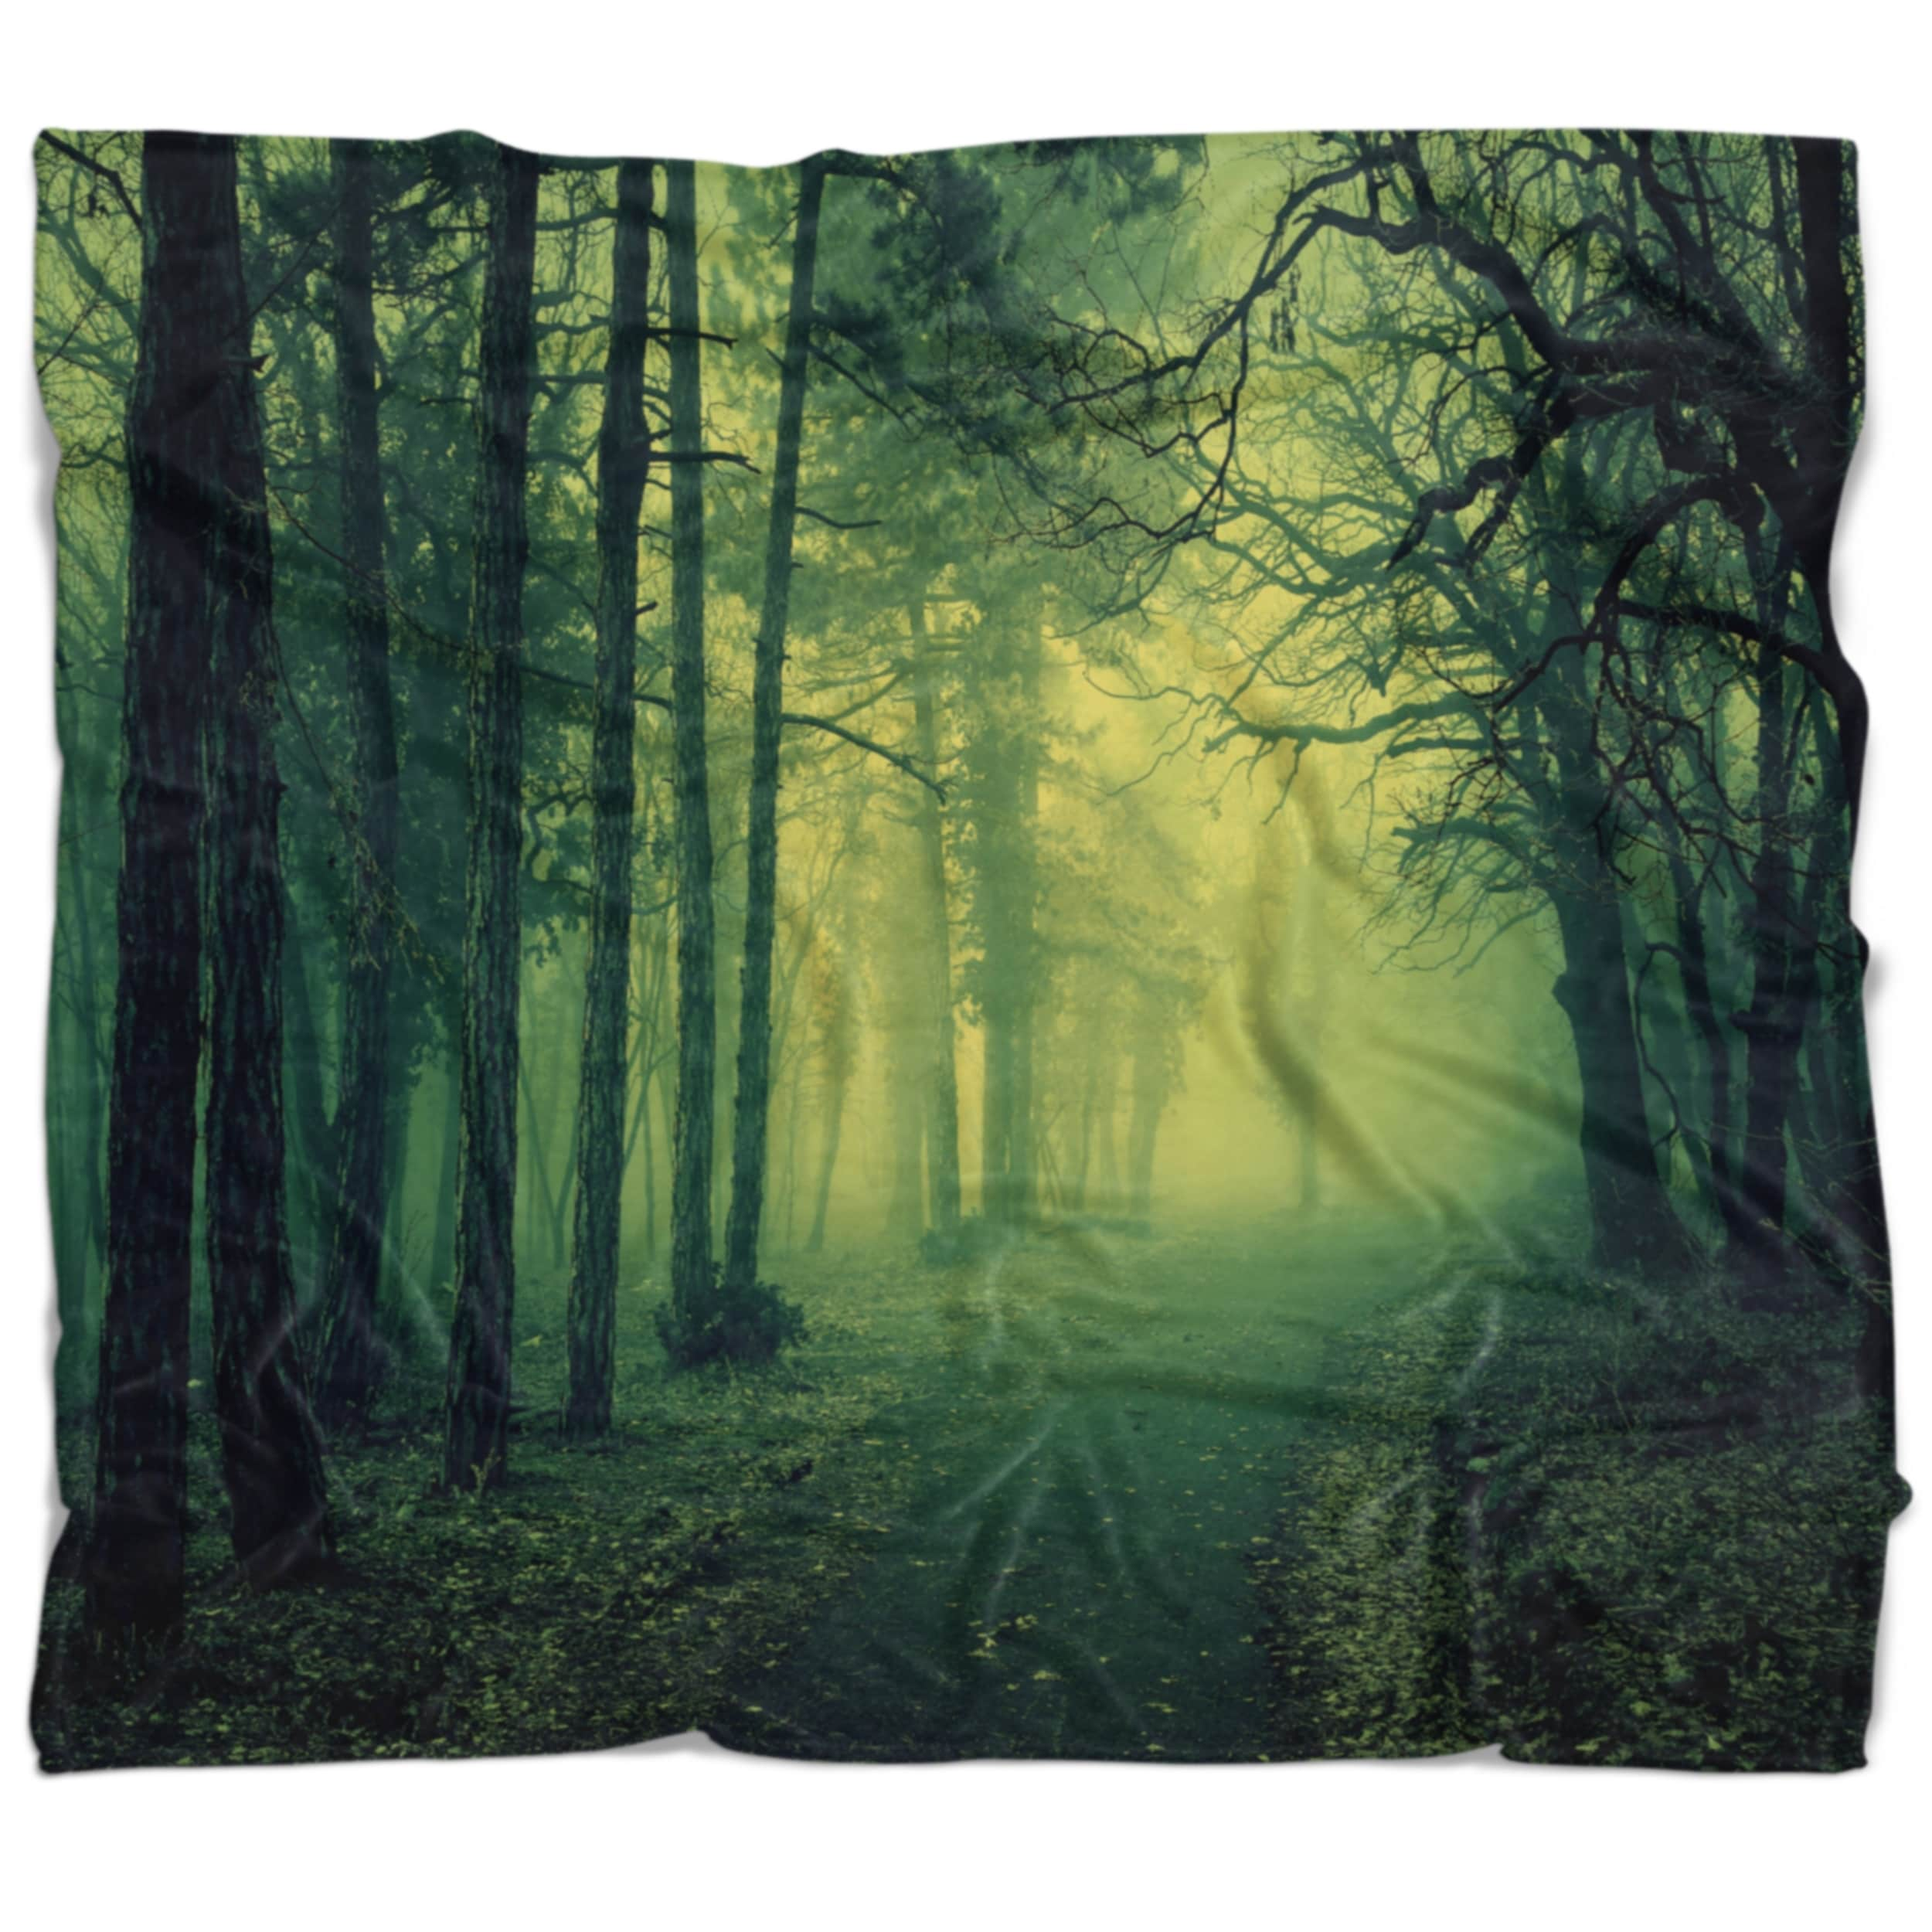 Designart Green Light In Thick Mist Forest Landscape Photography Throw Blanket On Sale Overstock 20912913 71 In X 59 In